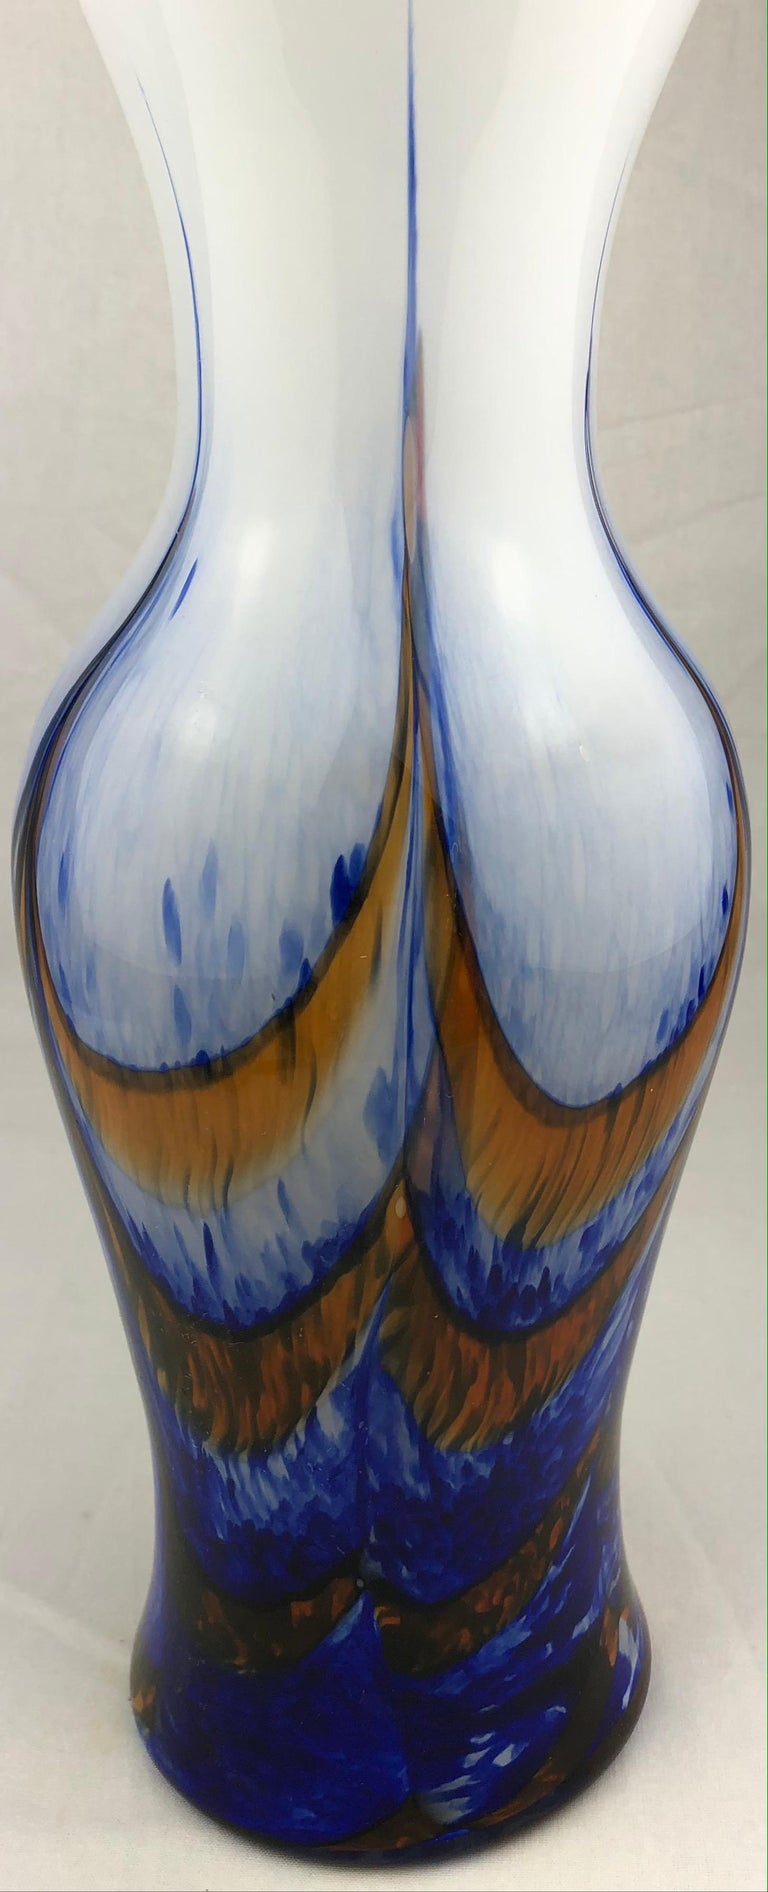 Mid-Century Modern Tall French Midcentury Art Glass Vase Attributed to Schneider Glassworks For Sale